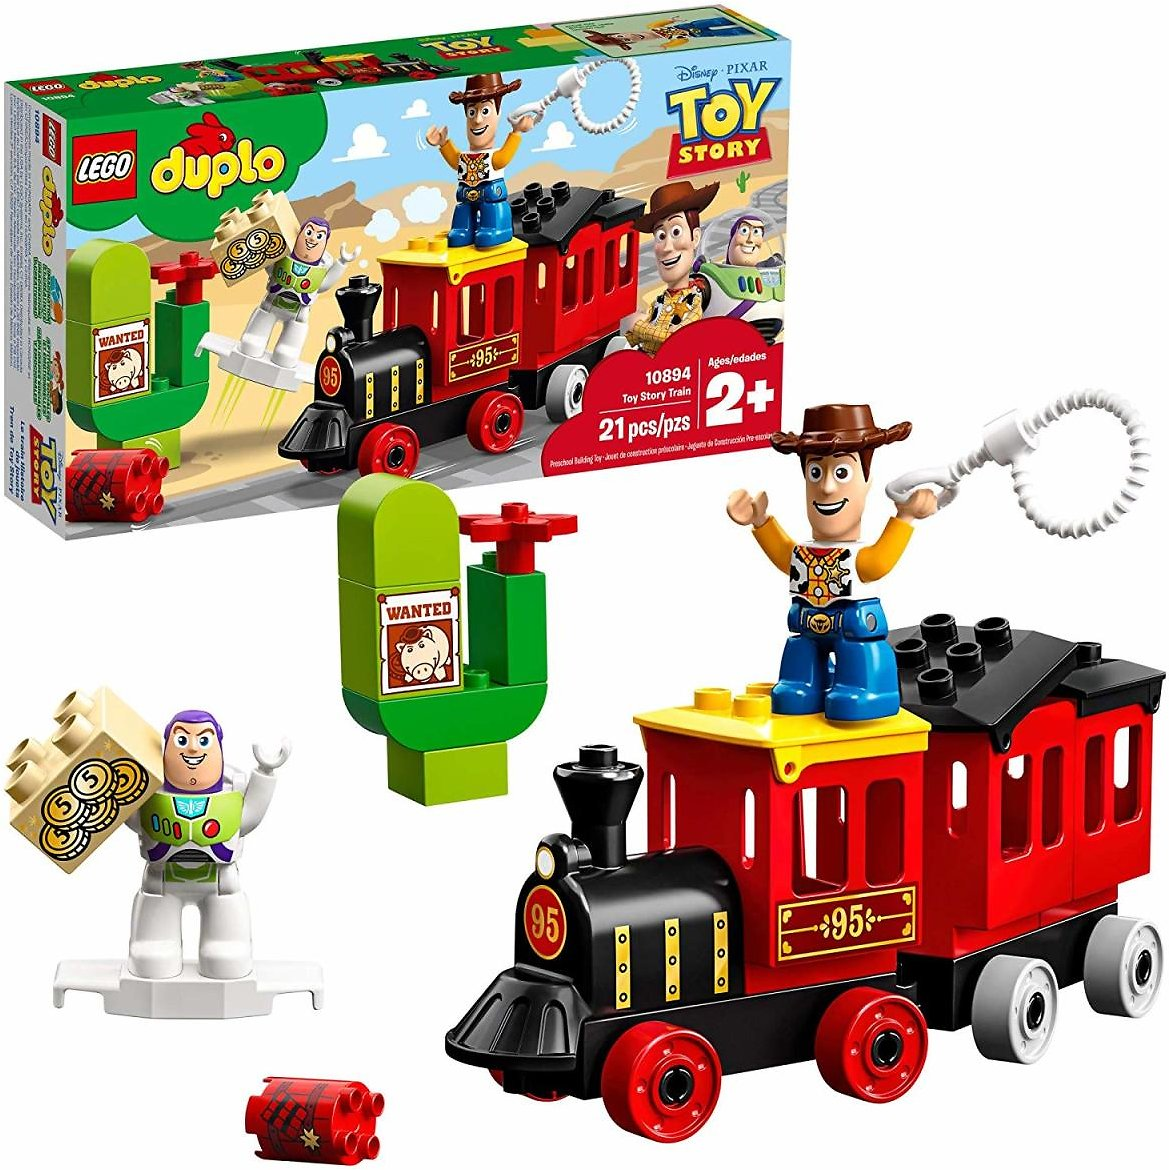 LEGO Duplo Toy Story Train (21 Pieces)